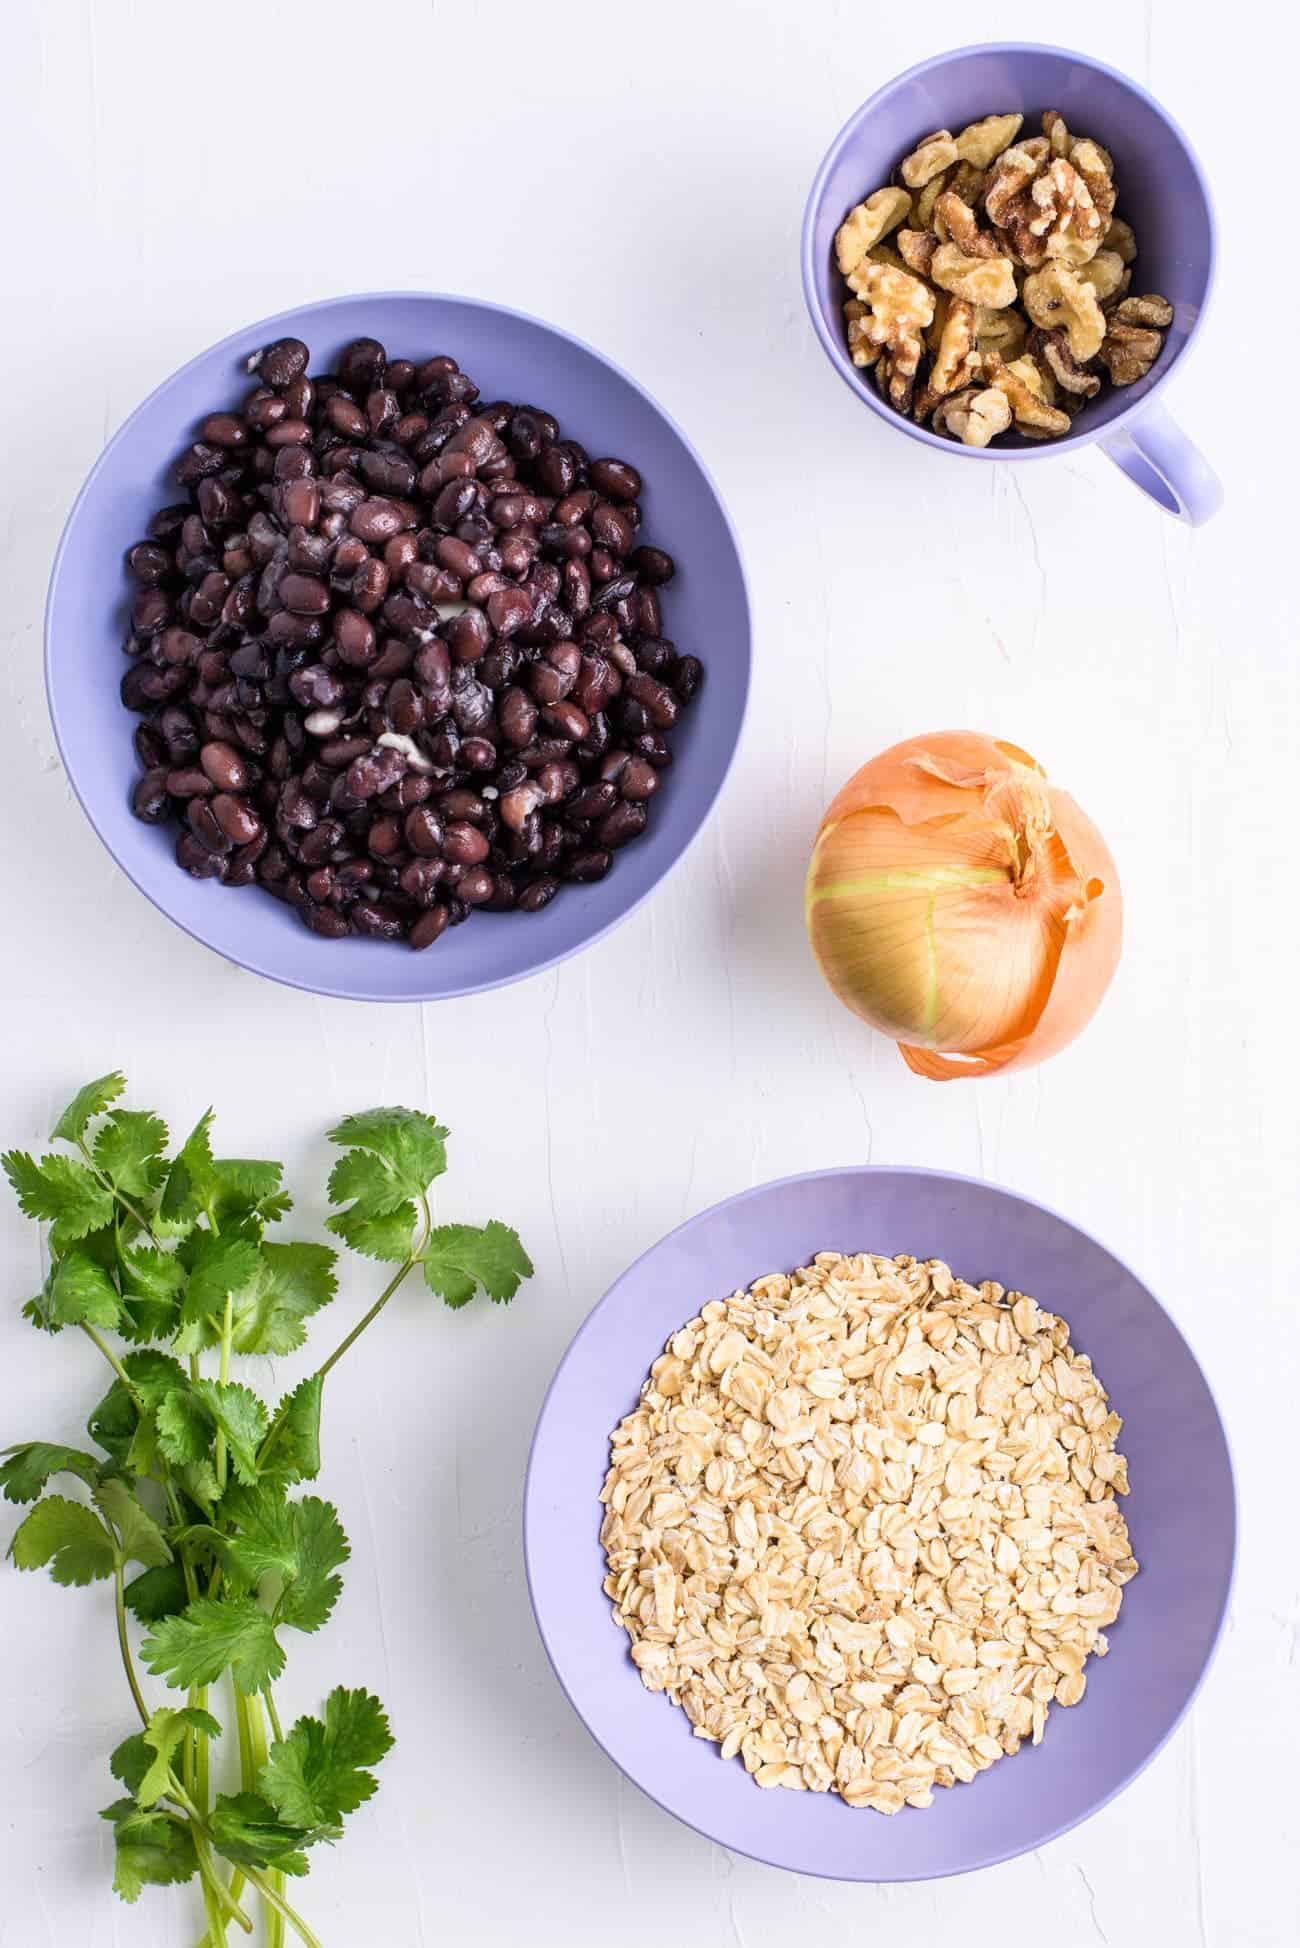 Ingredients to make vegan gluten-free black bean burgers laid out on a while table